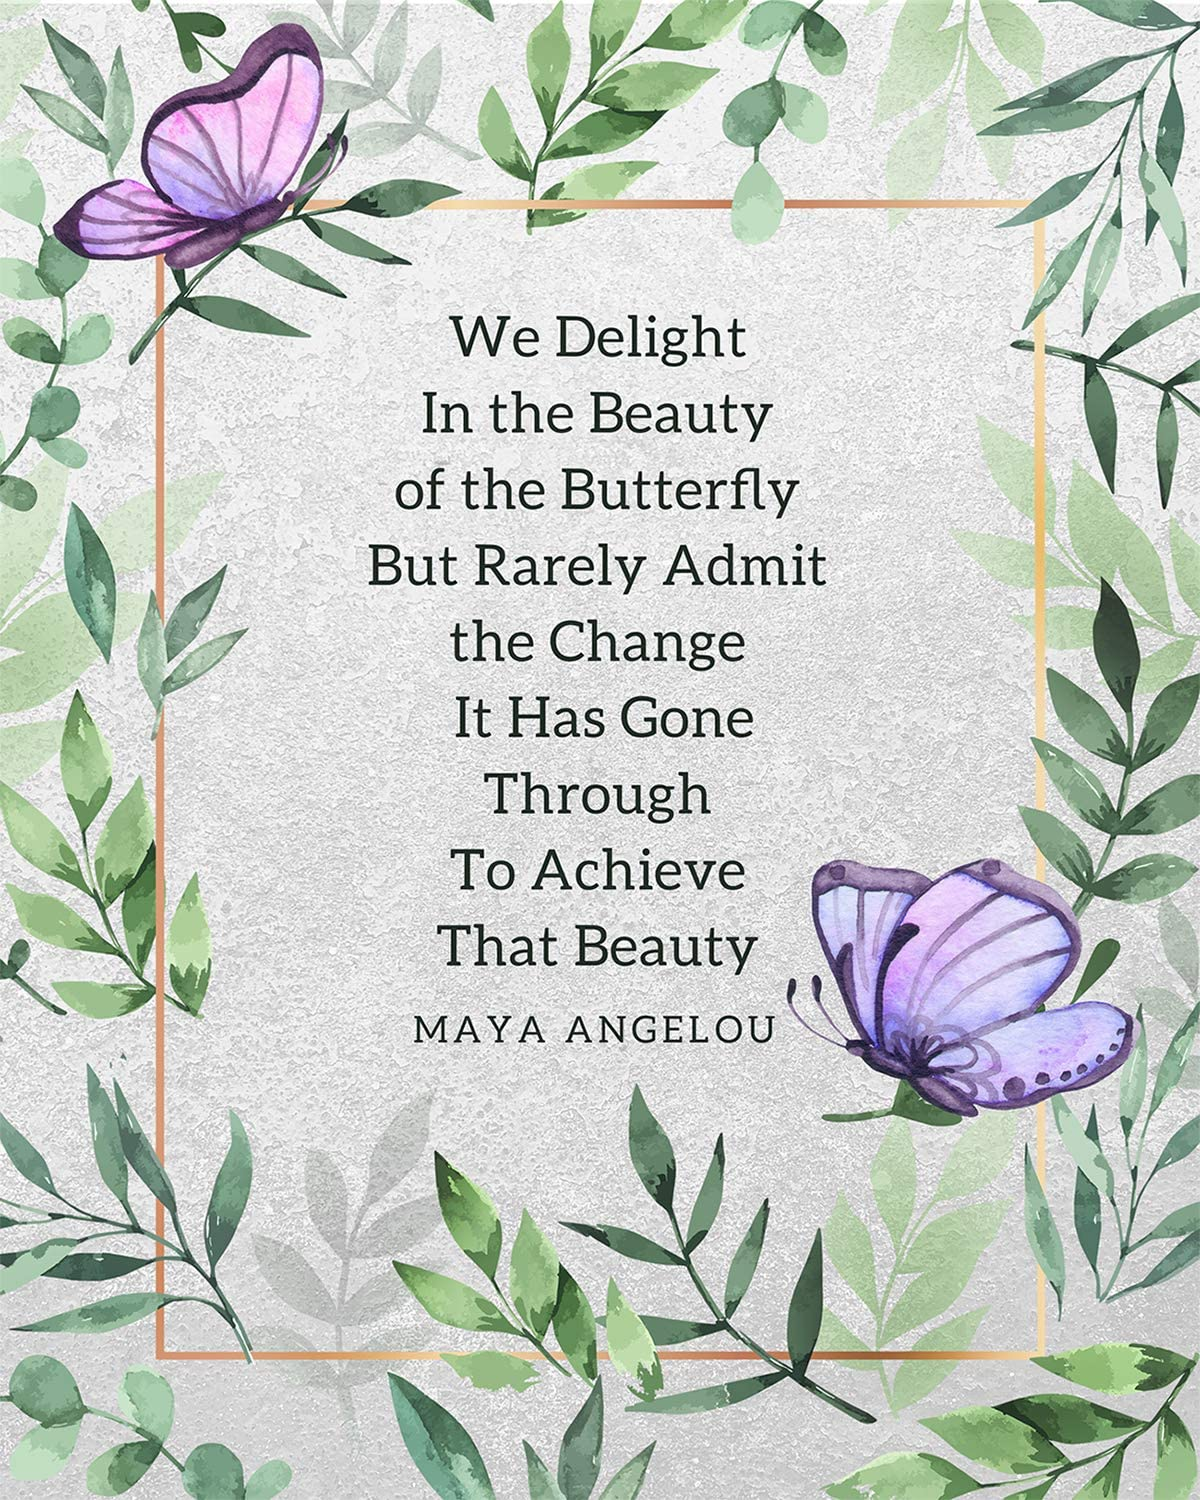 We Delight In the Beauty of the Butterfly...- Maya Angelou - Wall Decor Art Print on a light green background - 8x10 unframed butterfly-themed print - great gift to inspire your relatives and friends